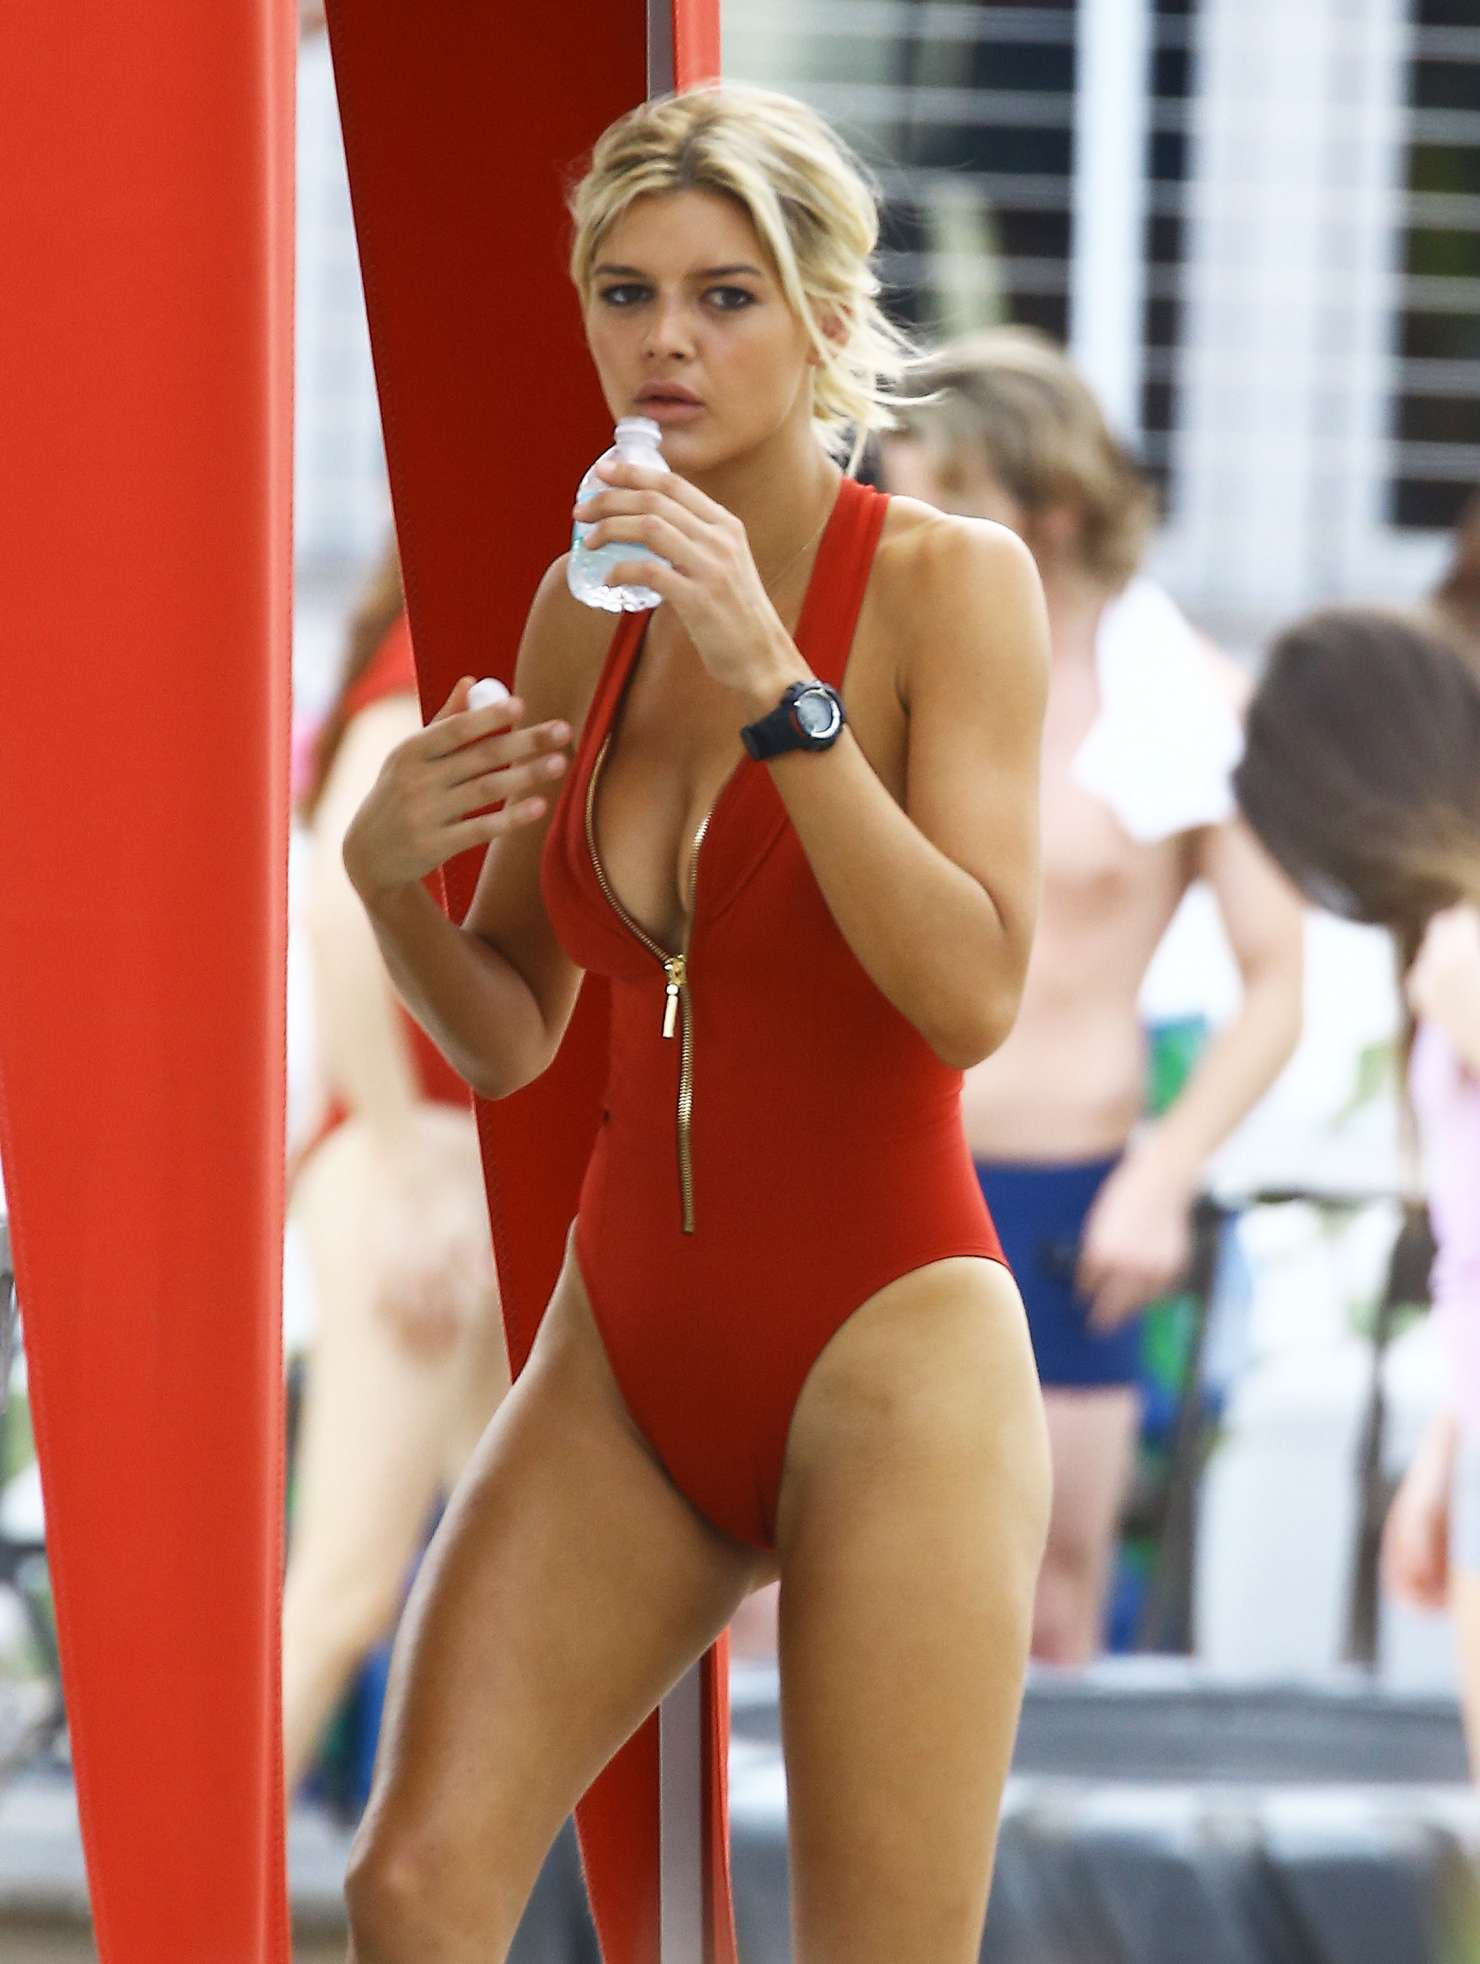 Kelly Rohrbach Hot Swimsuit 38 Casey Batchelor Cameltoe Bikini